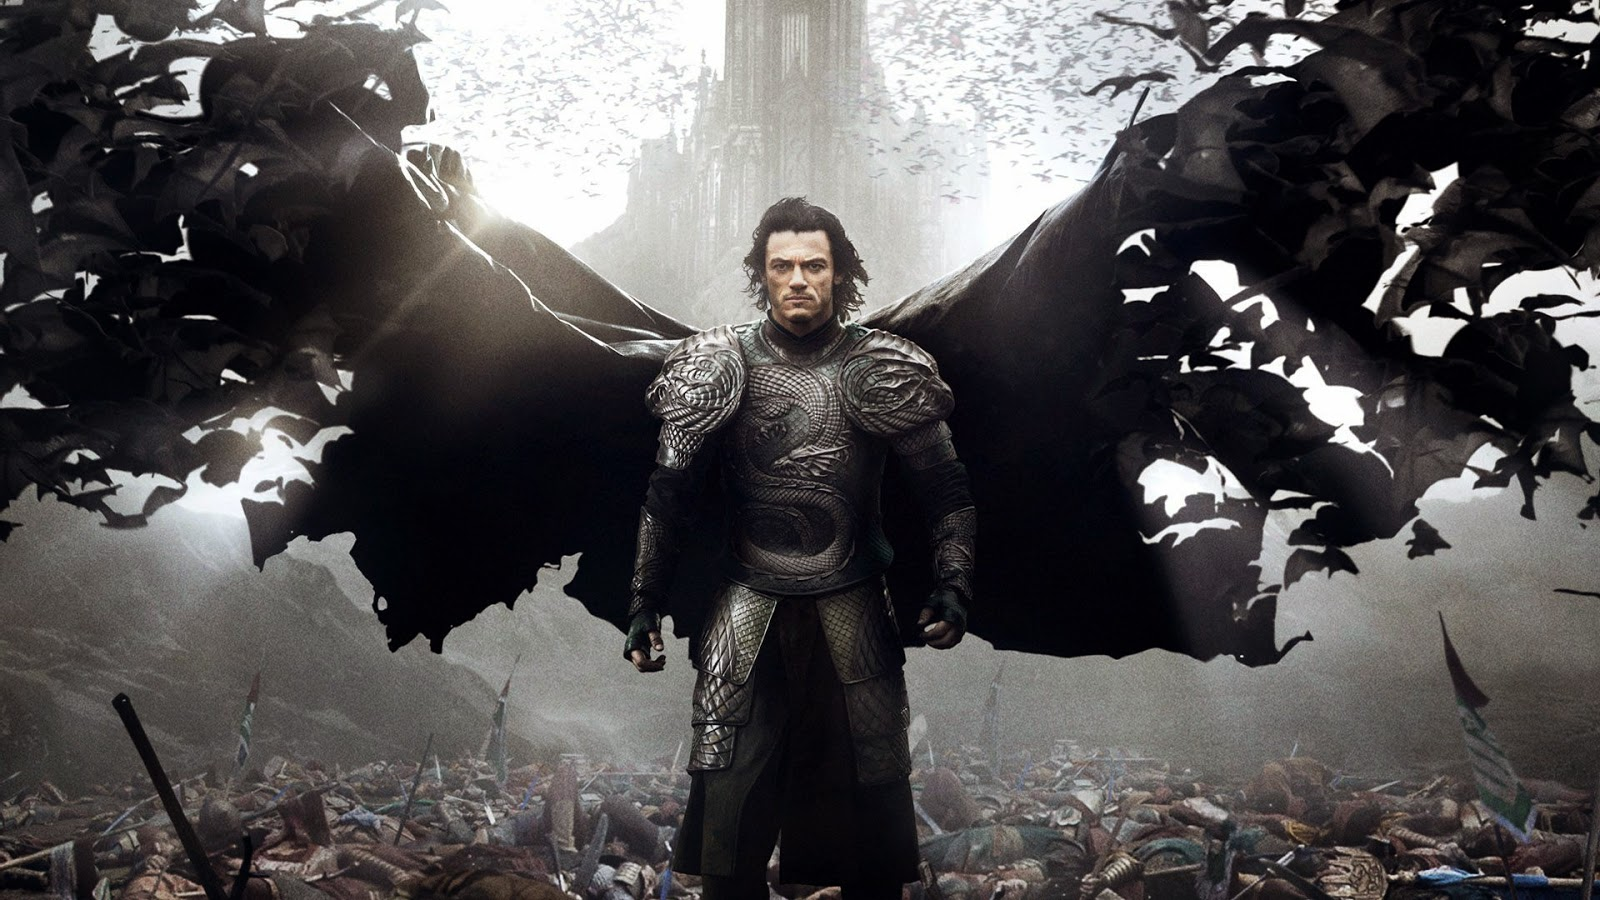 Dracula Untold Retina Movie Wallpaper: North/South Film: Chris's Review: 'Dracula Untold' Removes